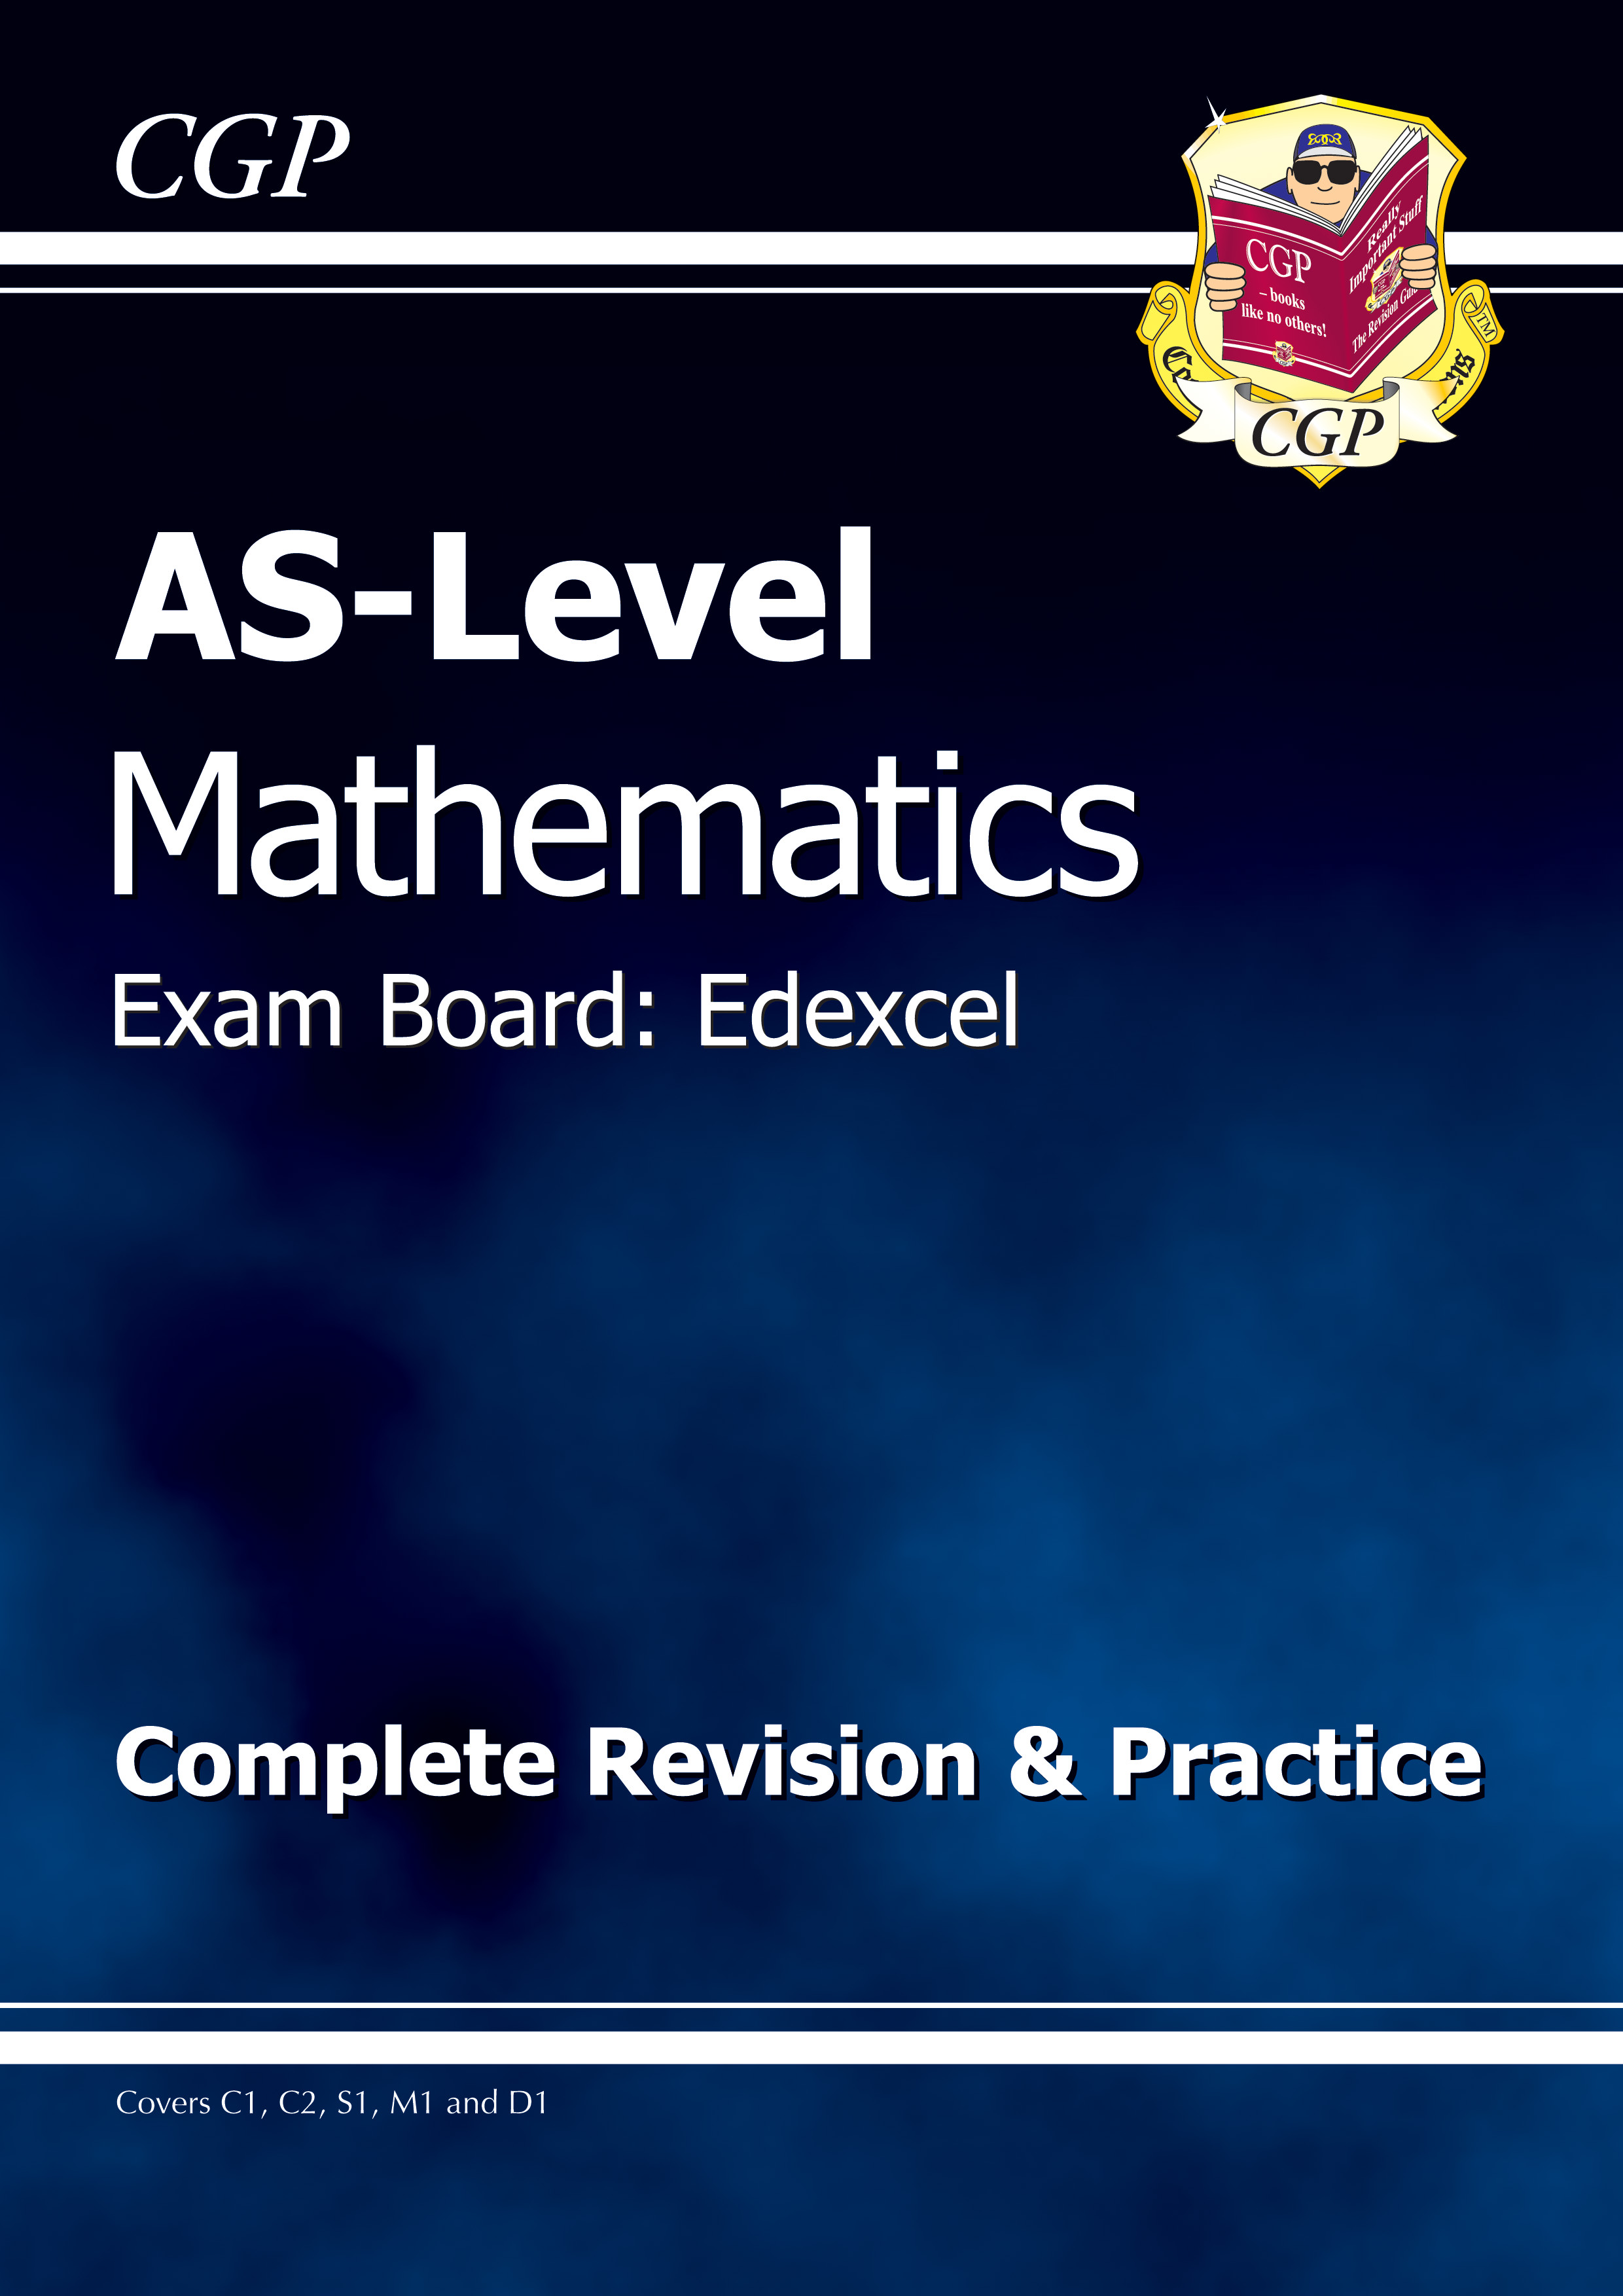 MER51DK - AS-Level Maths Edexcel Complete Revision & Practice